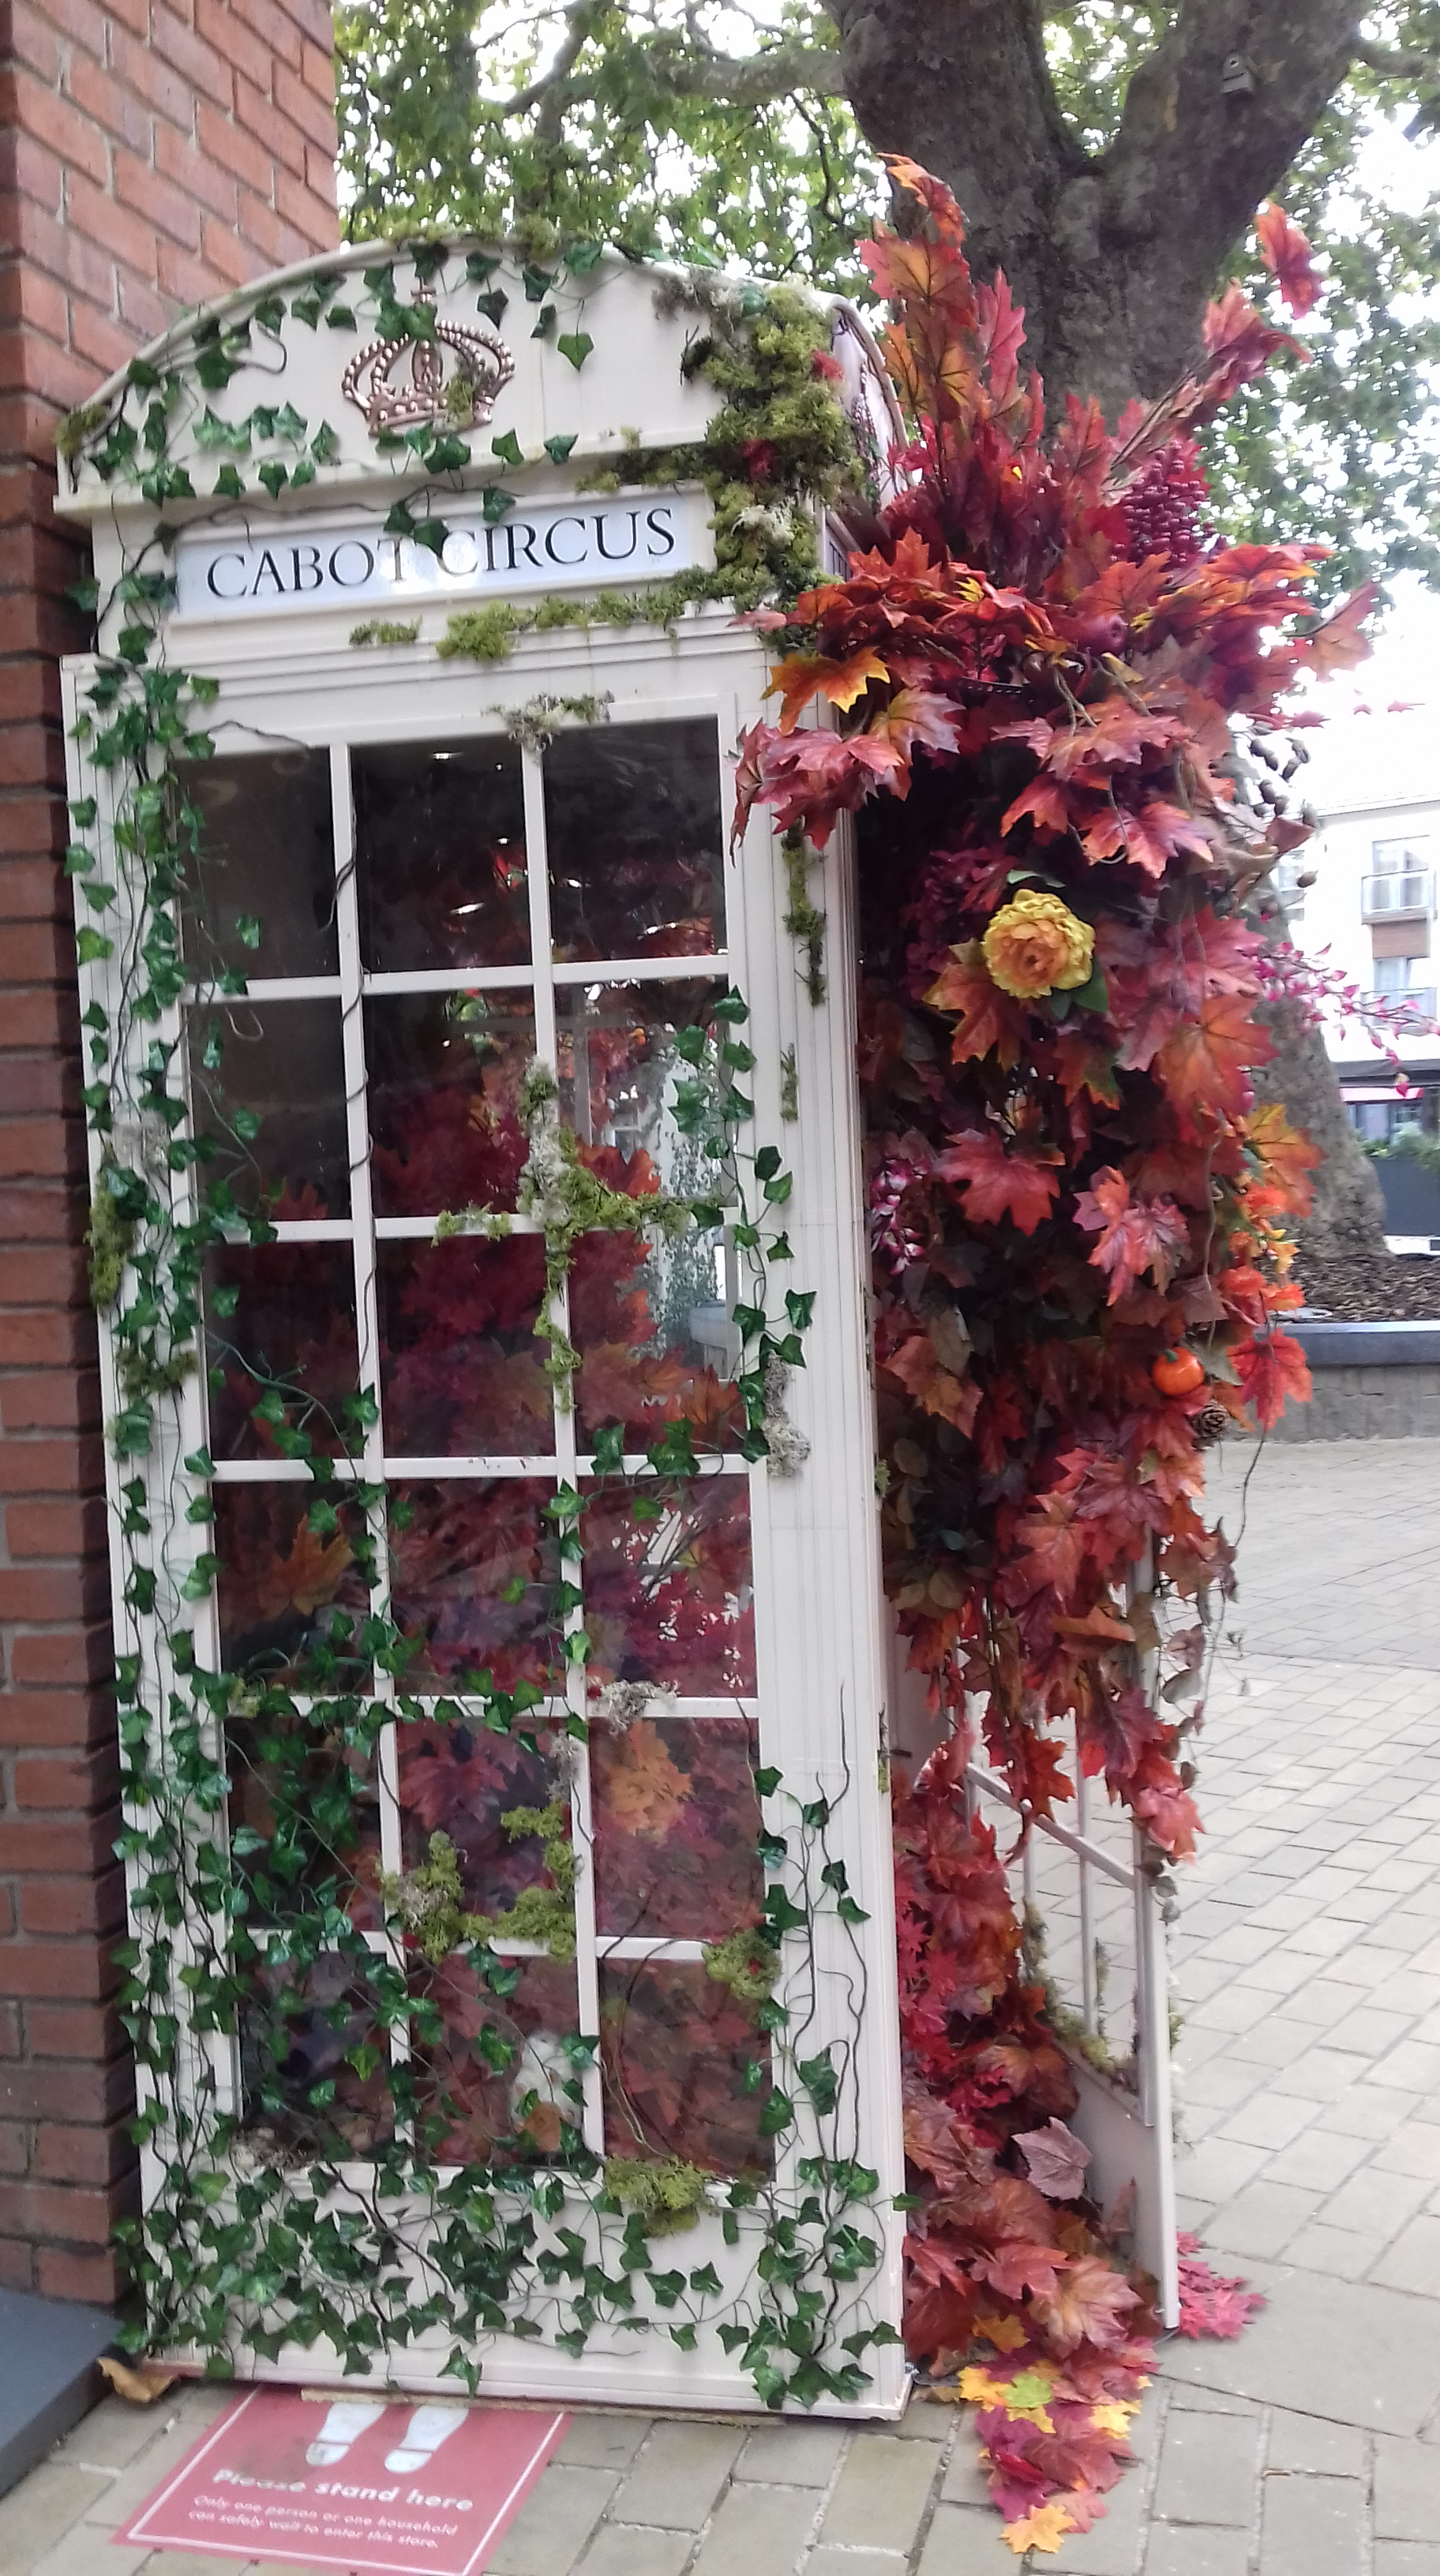 A phone box filled with autumn leaves in Cabot Circus